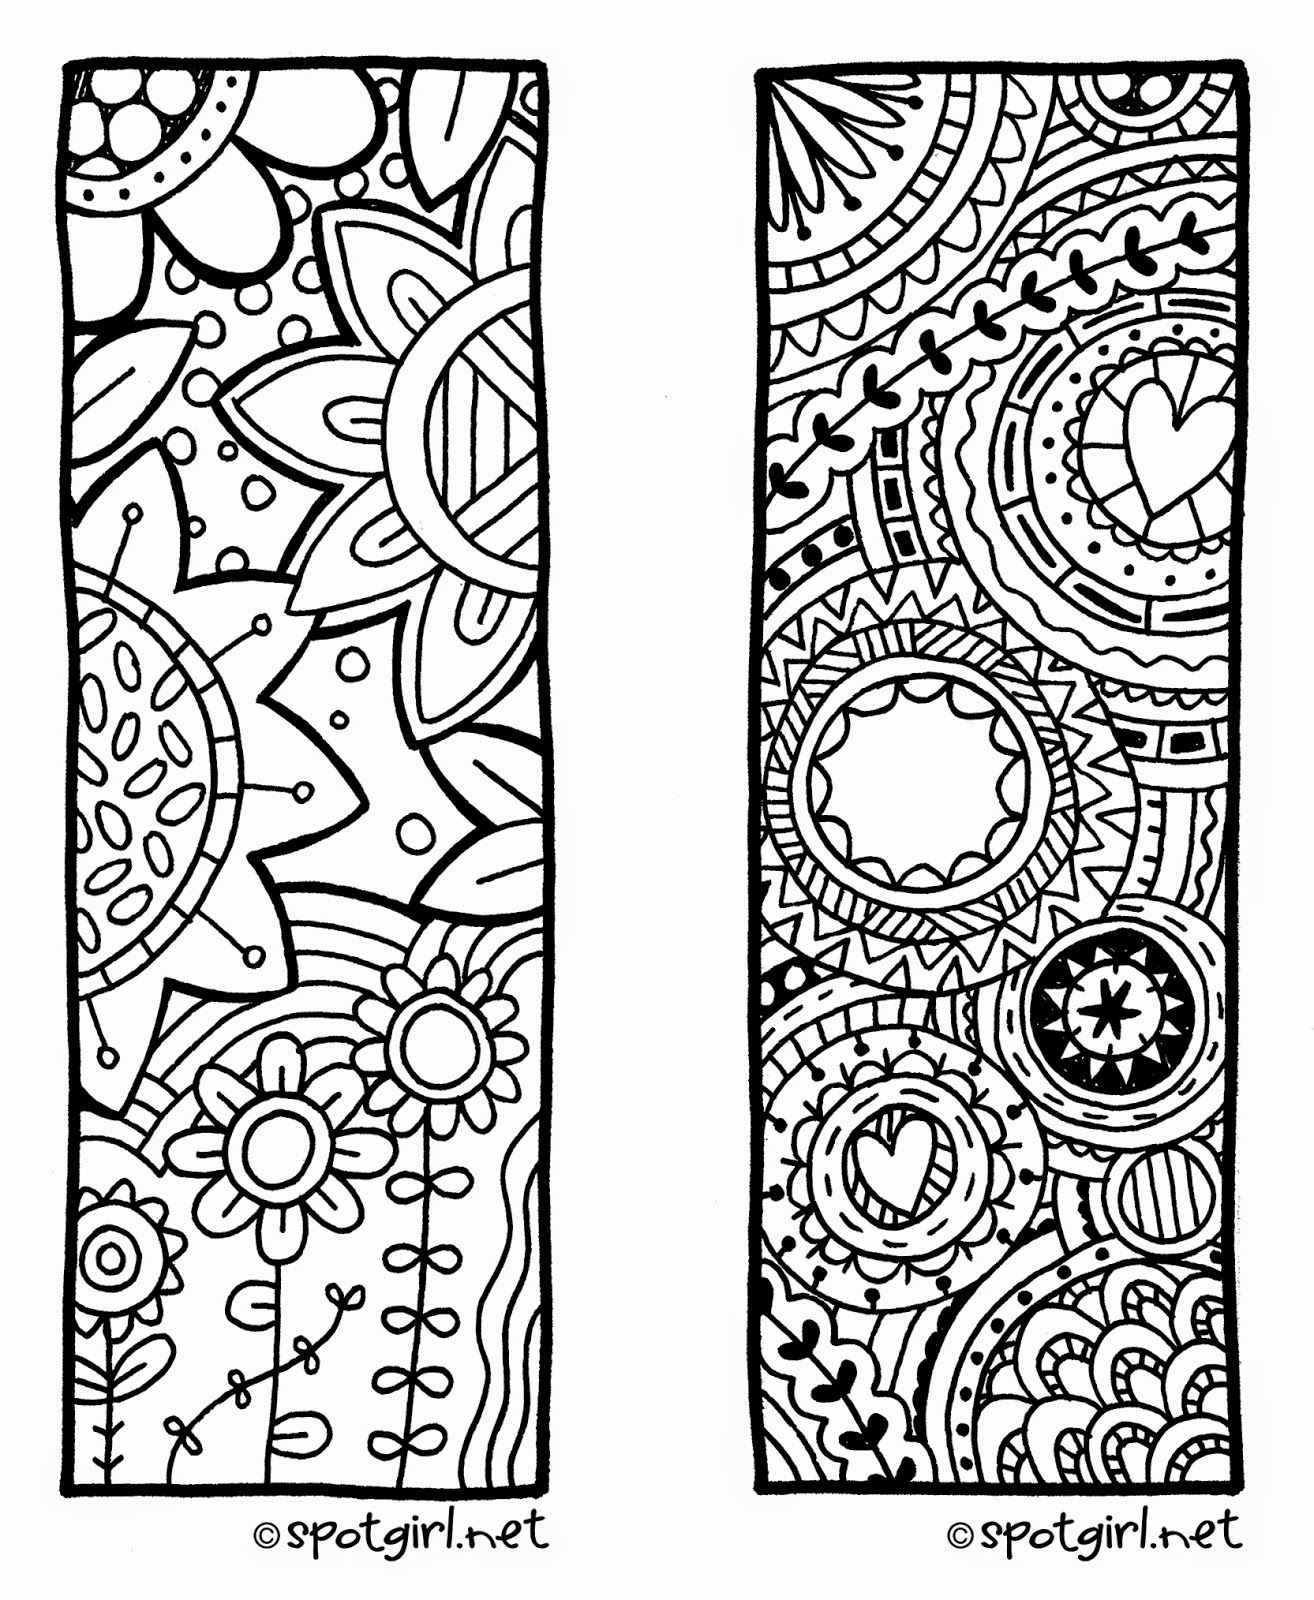 bookmarks for your classroom library classroom doodles